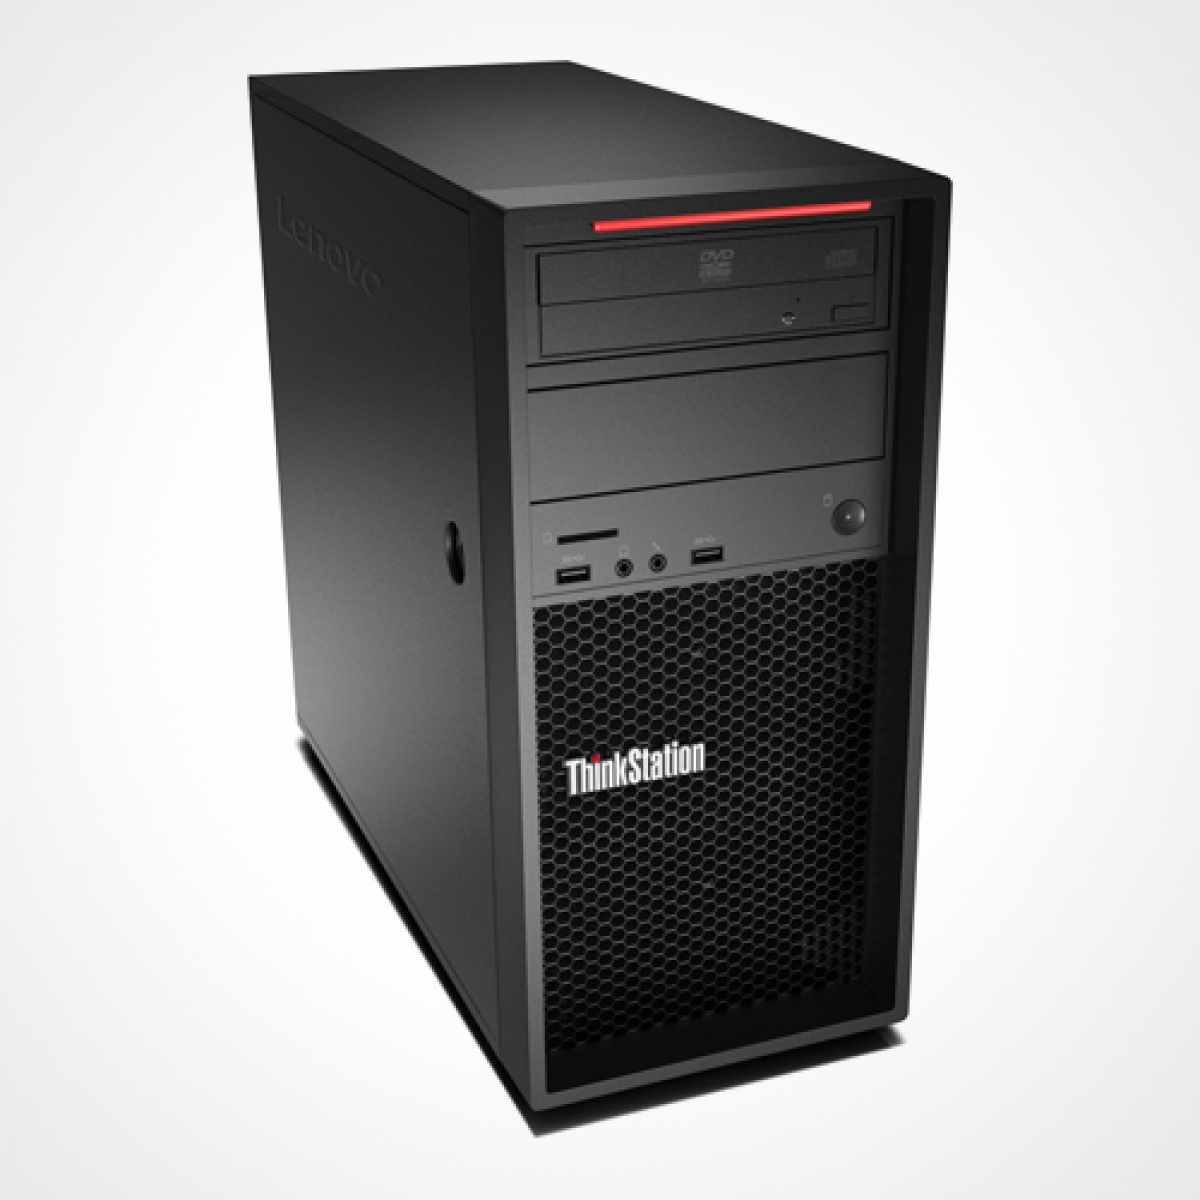 ThinkStation P520c Workstation